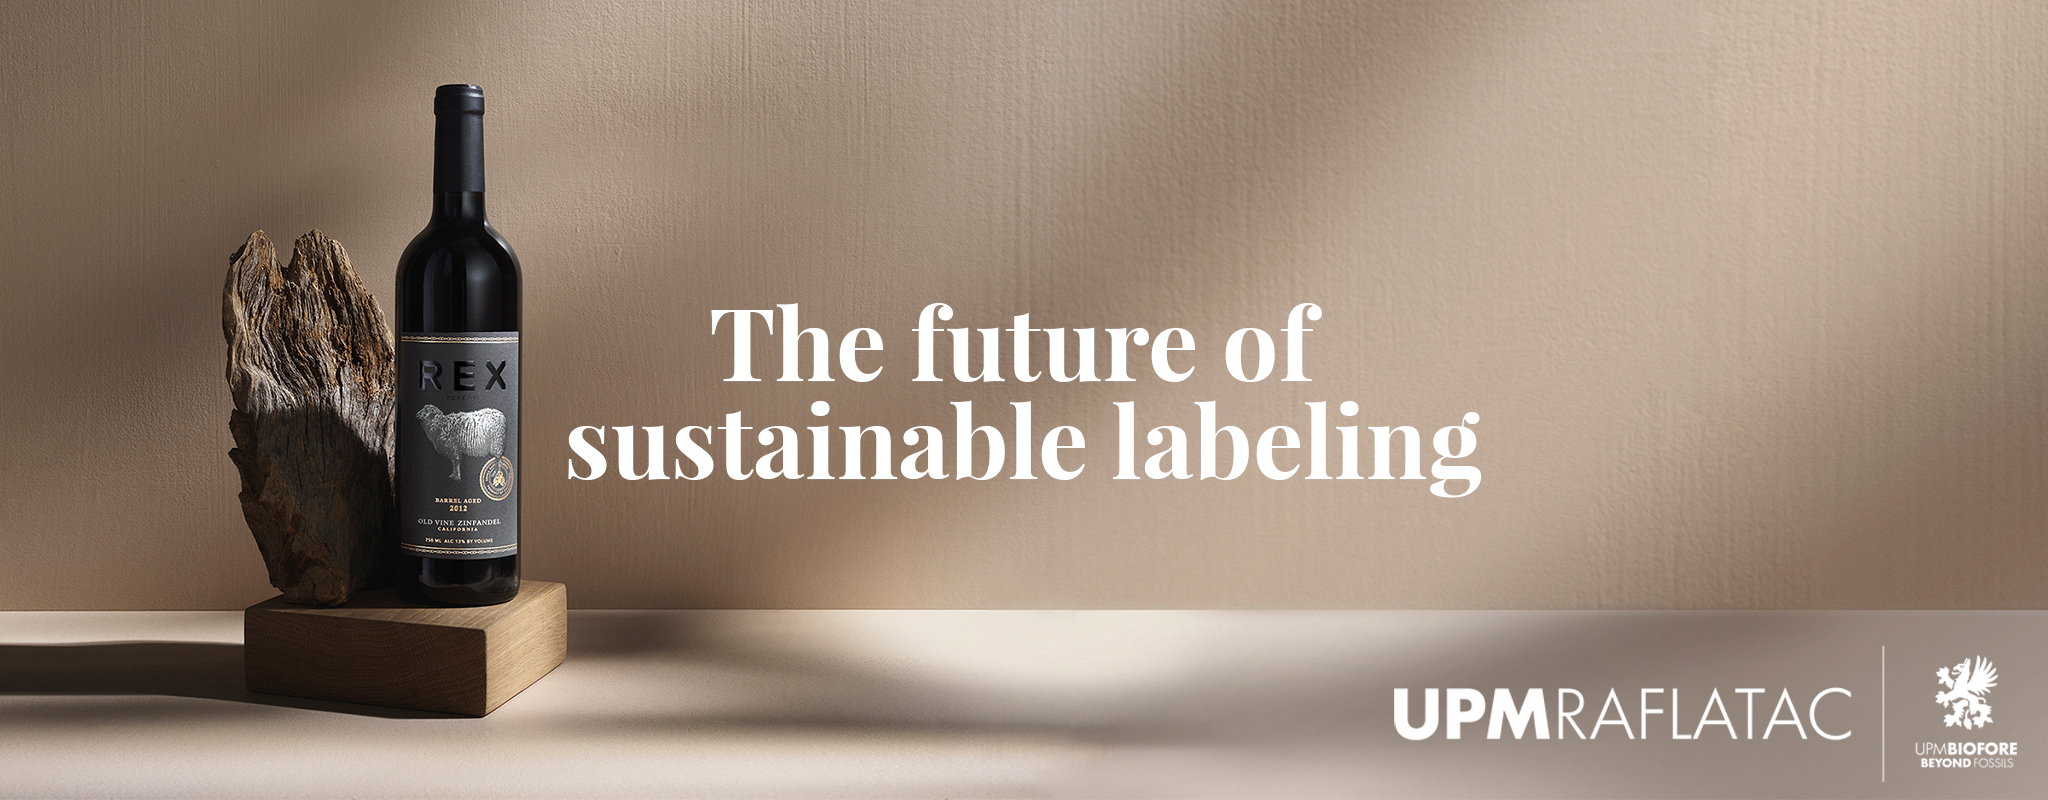 UPM Raflatac - sustainable labeling future